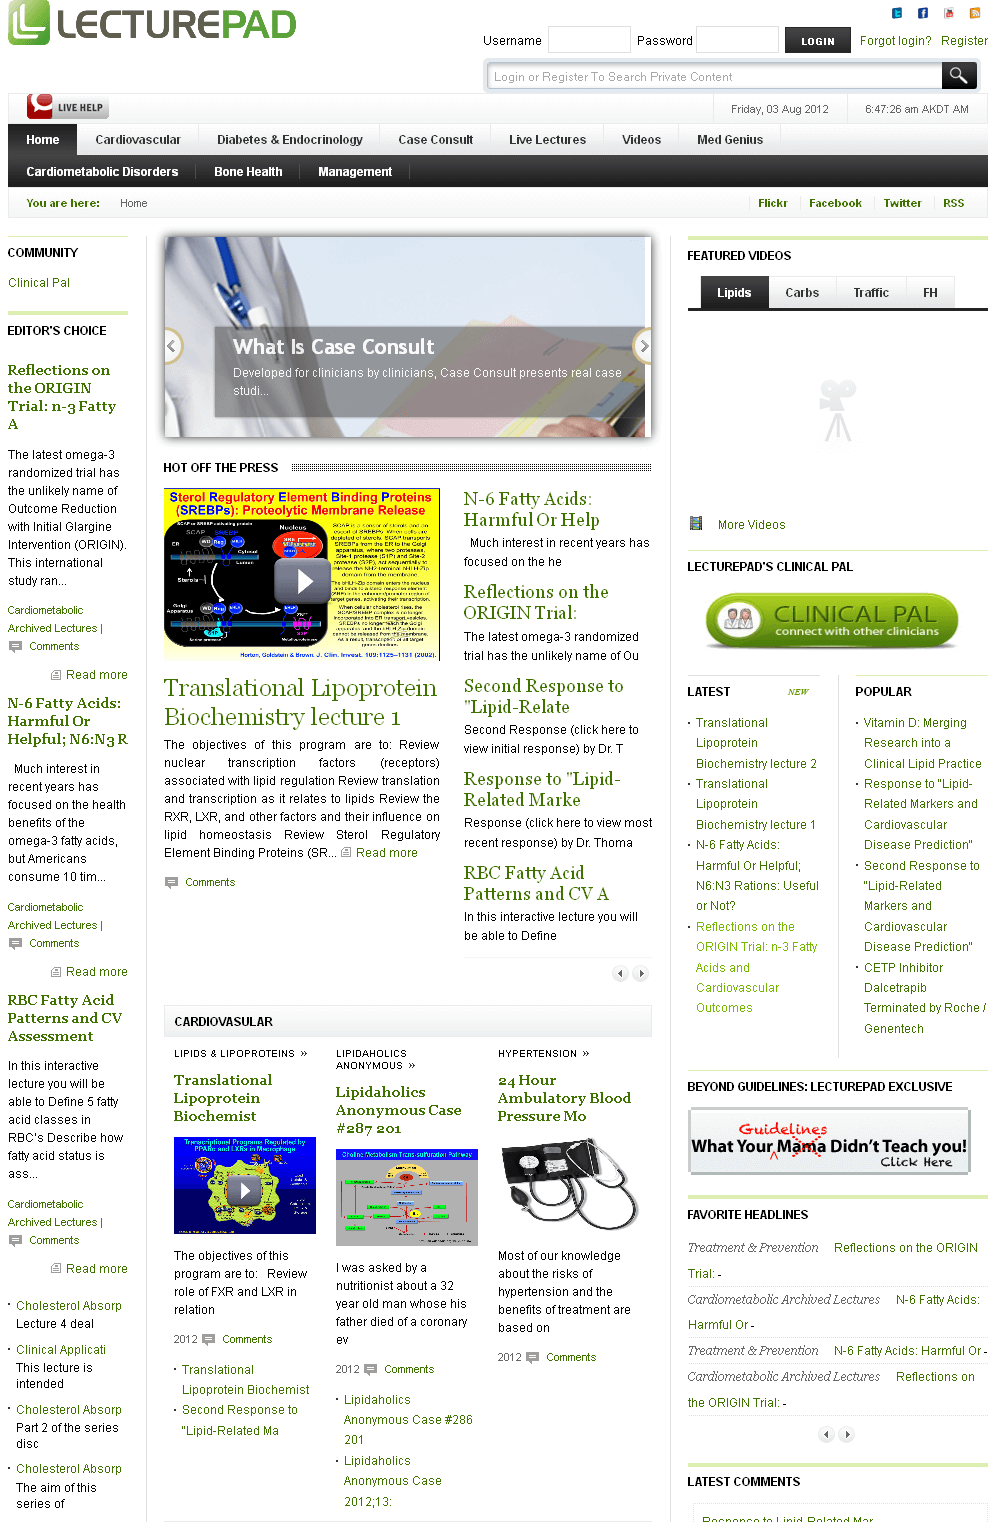 Development of Joomla Based Site for Clinicians